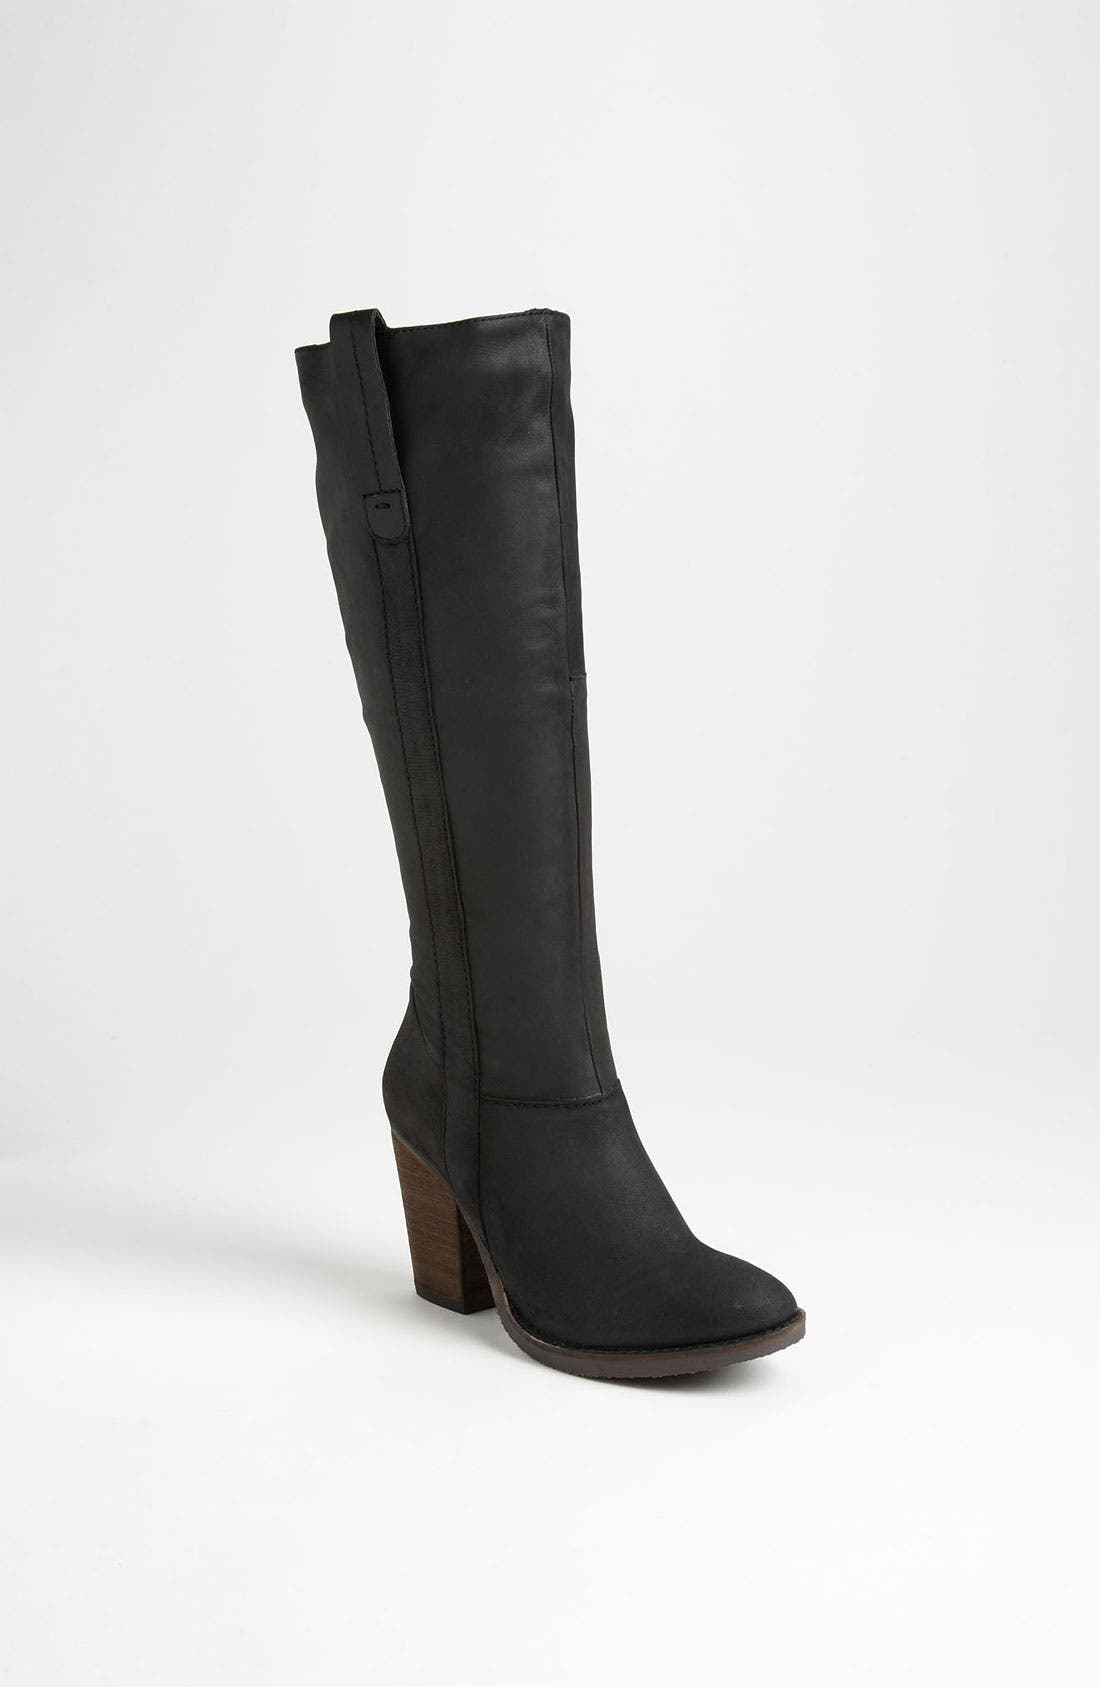 Alternate Image 1 Selected - Steve Madden 'Raingerr' Boot